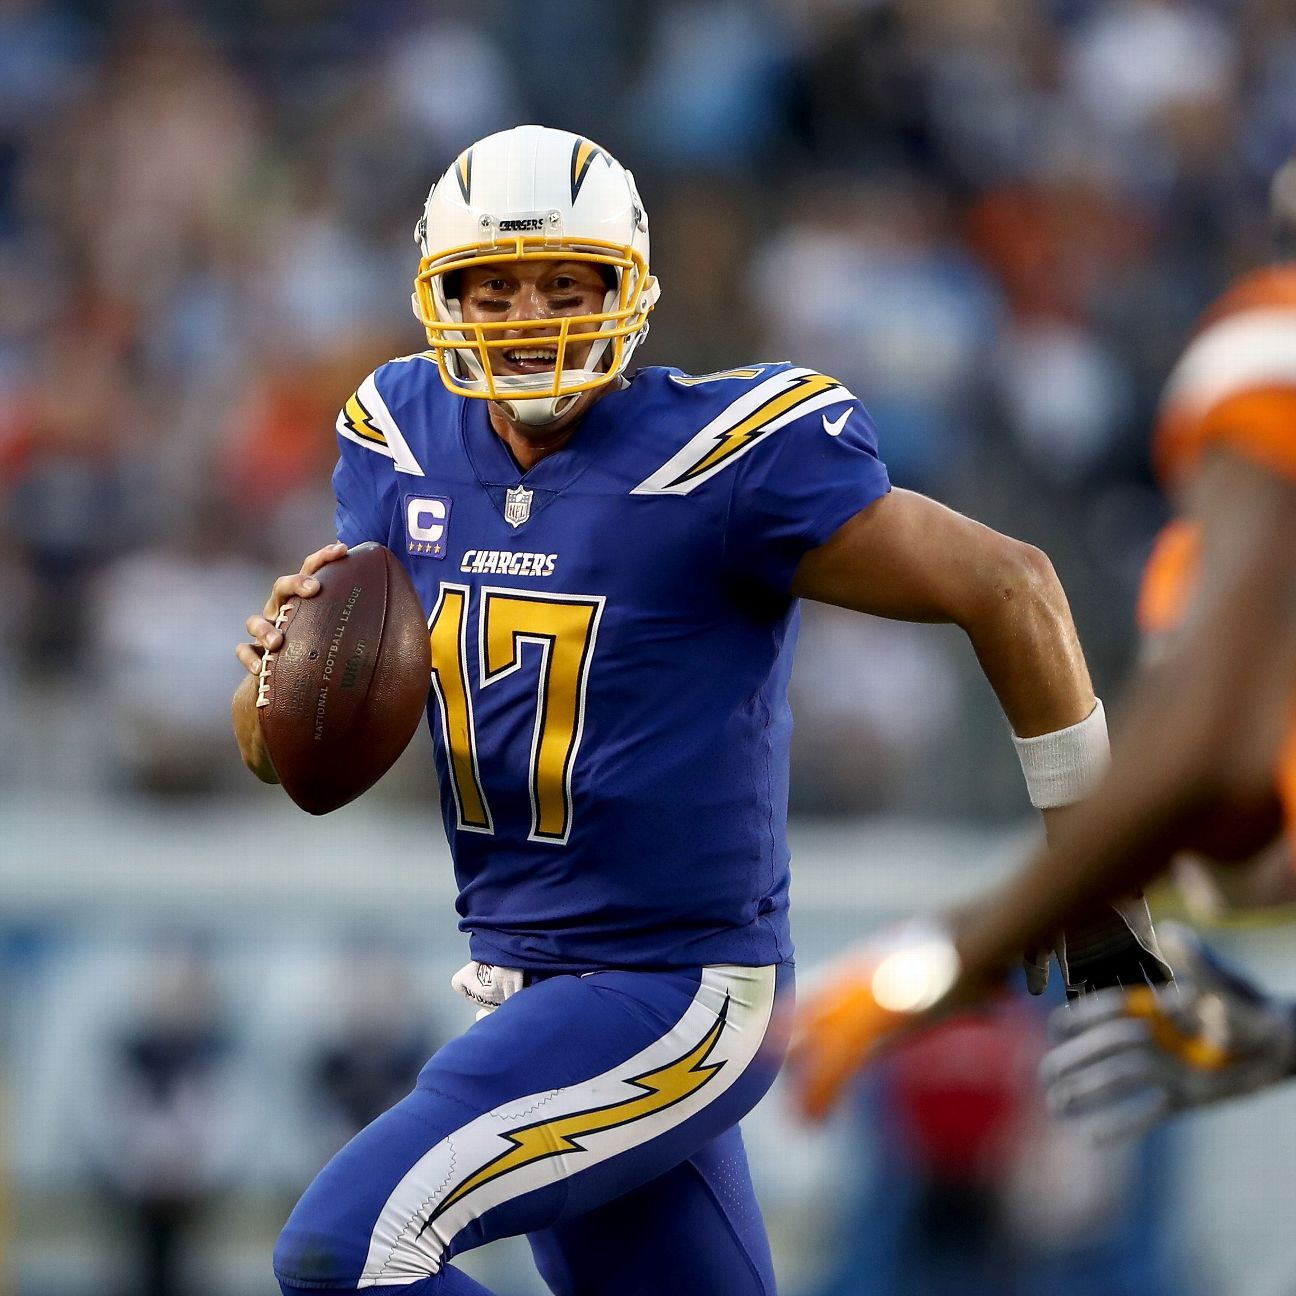 Chargers Qb Philip Rivers Denver Is Going To Be A Heck